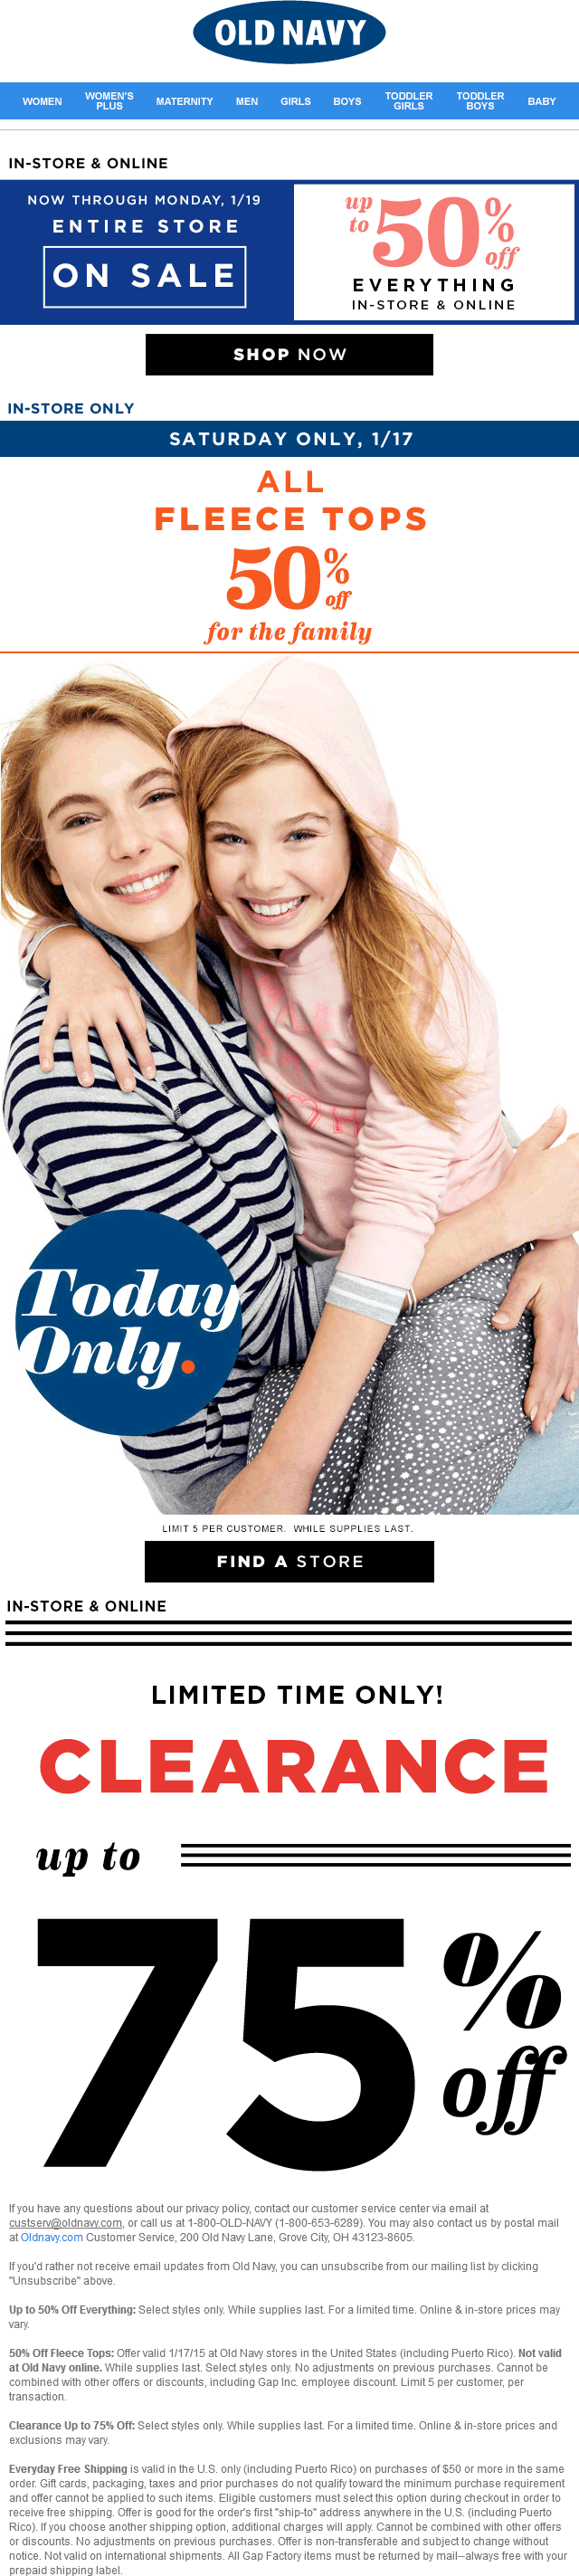 Old Navy Coupon March 2018 Everything is on sale this weekend at Old Navy, ditto online